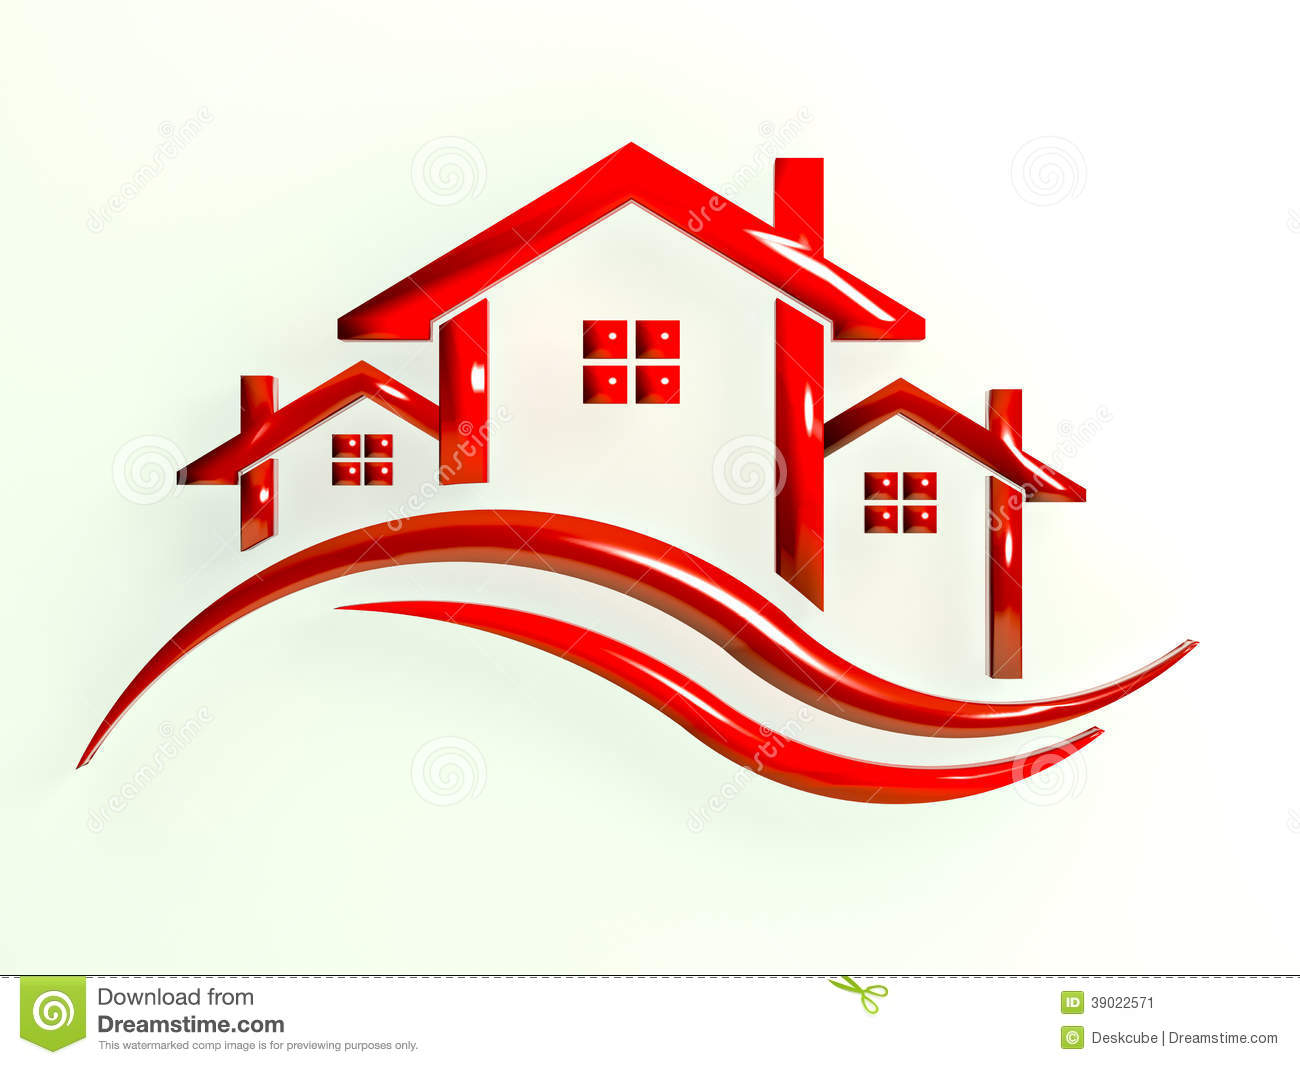 almughni pjsmaskswallpaperhd likewise Gift Box moreover 54 Great Green Logos For Inspiration together with Stock Image Red Logo Houses Waves Real Estate Image39022571 also Entrepreneurship. on free house logo design